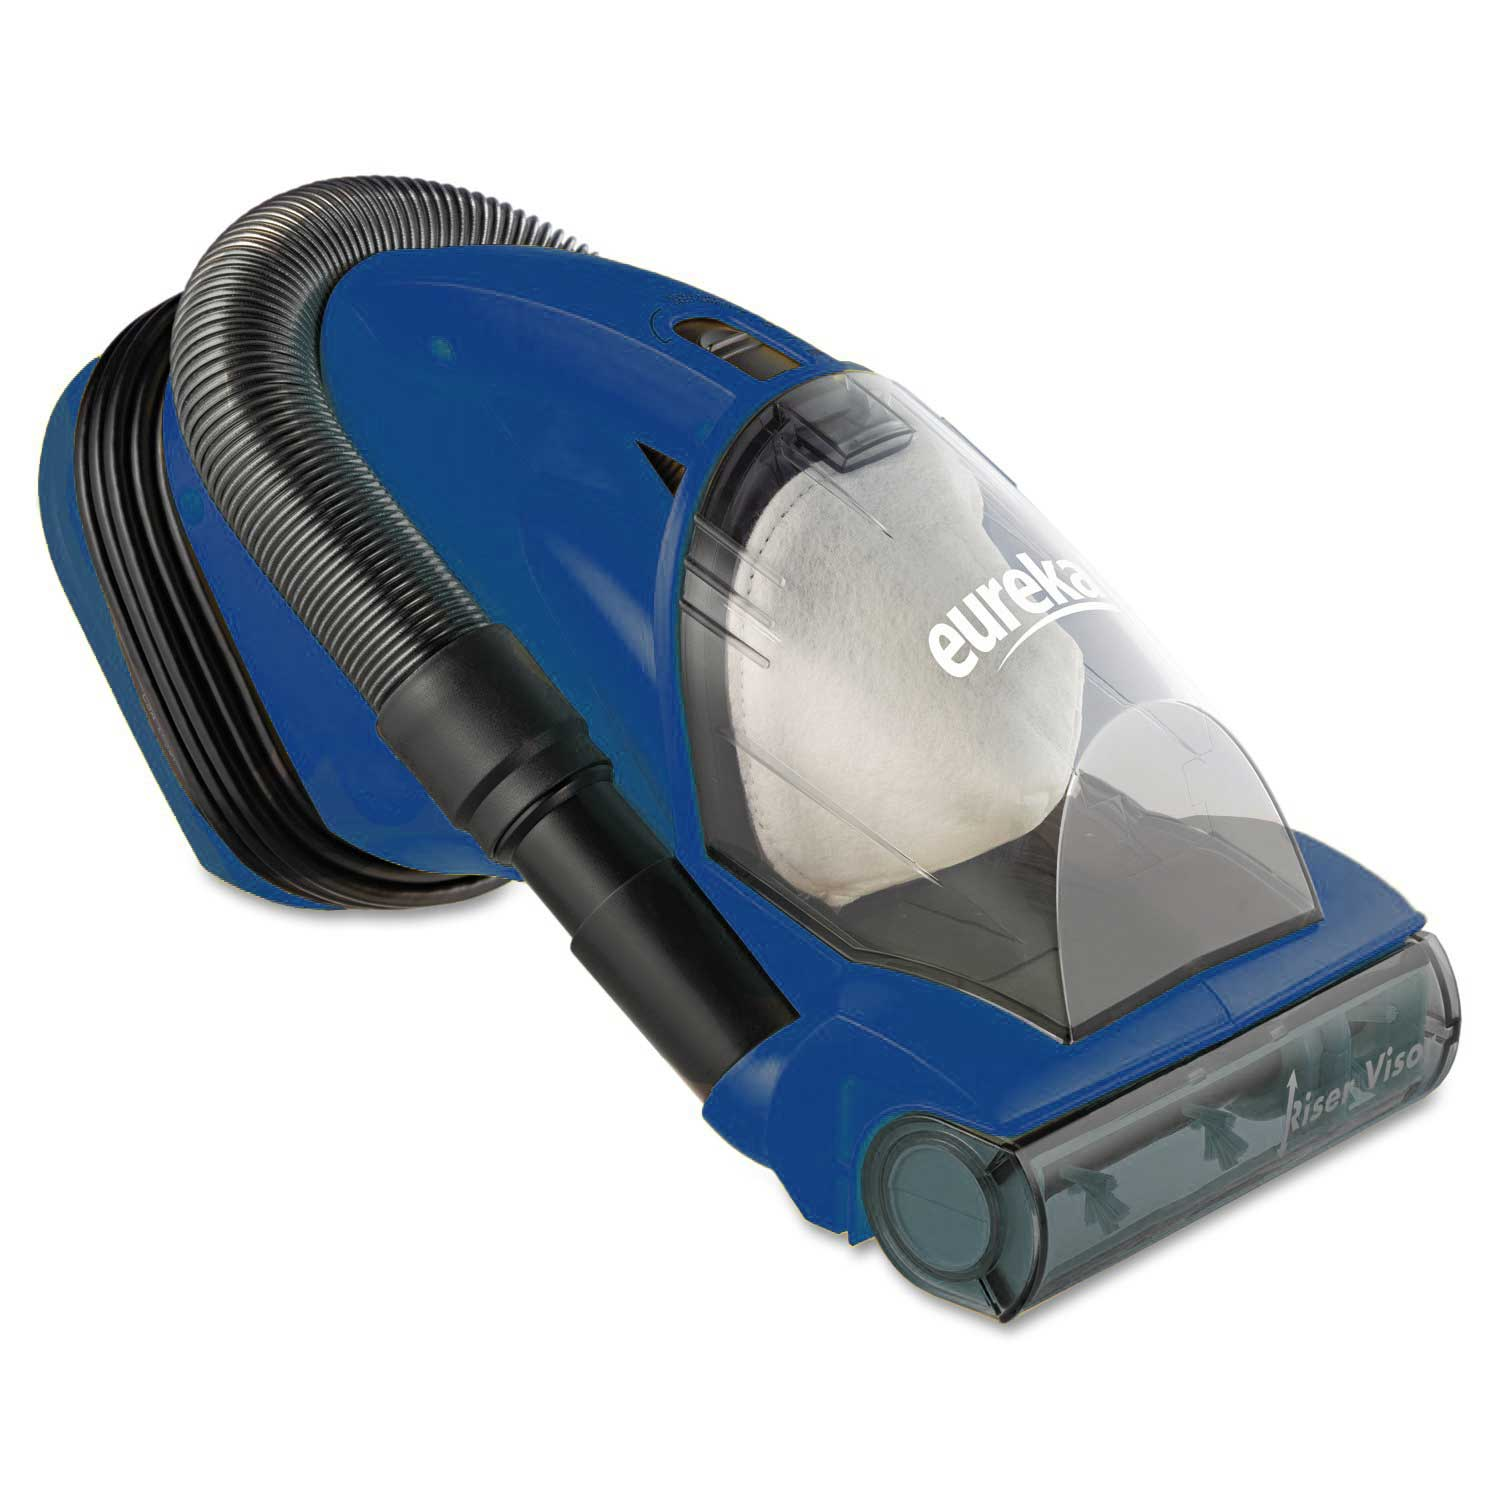 Eureka Easy Clean Bagless Mulit-Surface Hand Vacuum, 71C